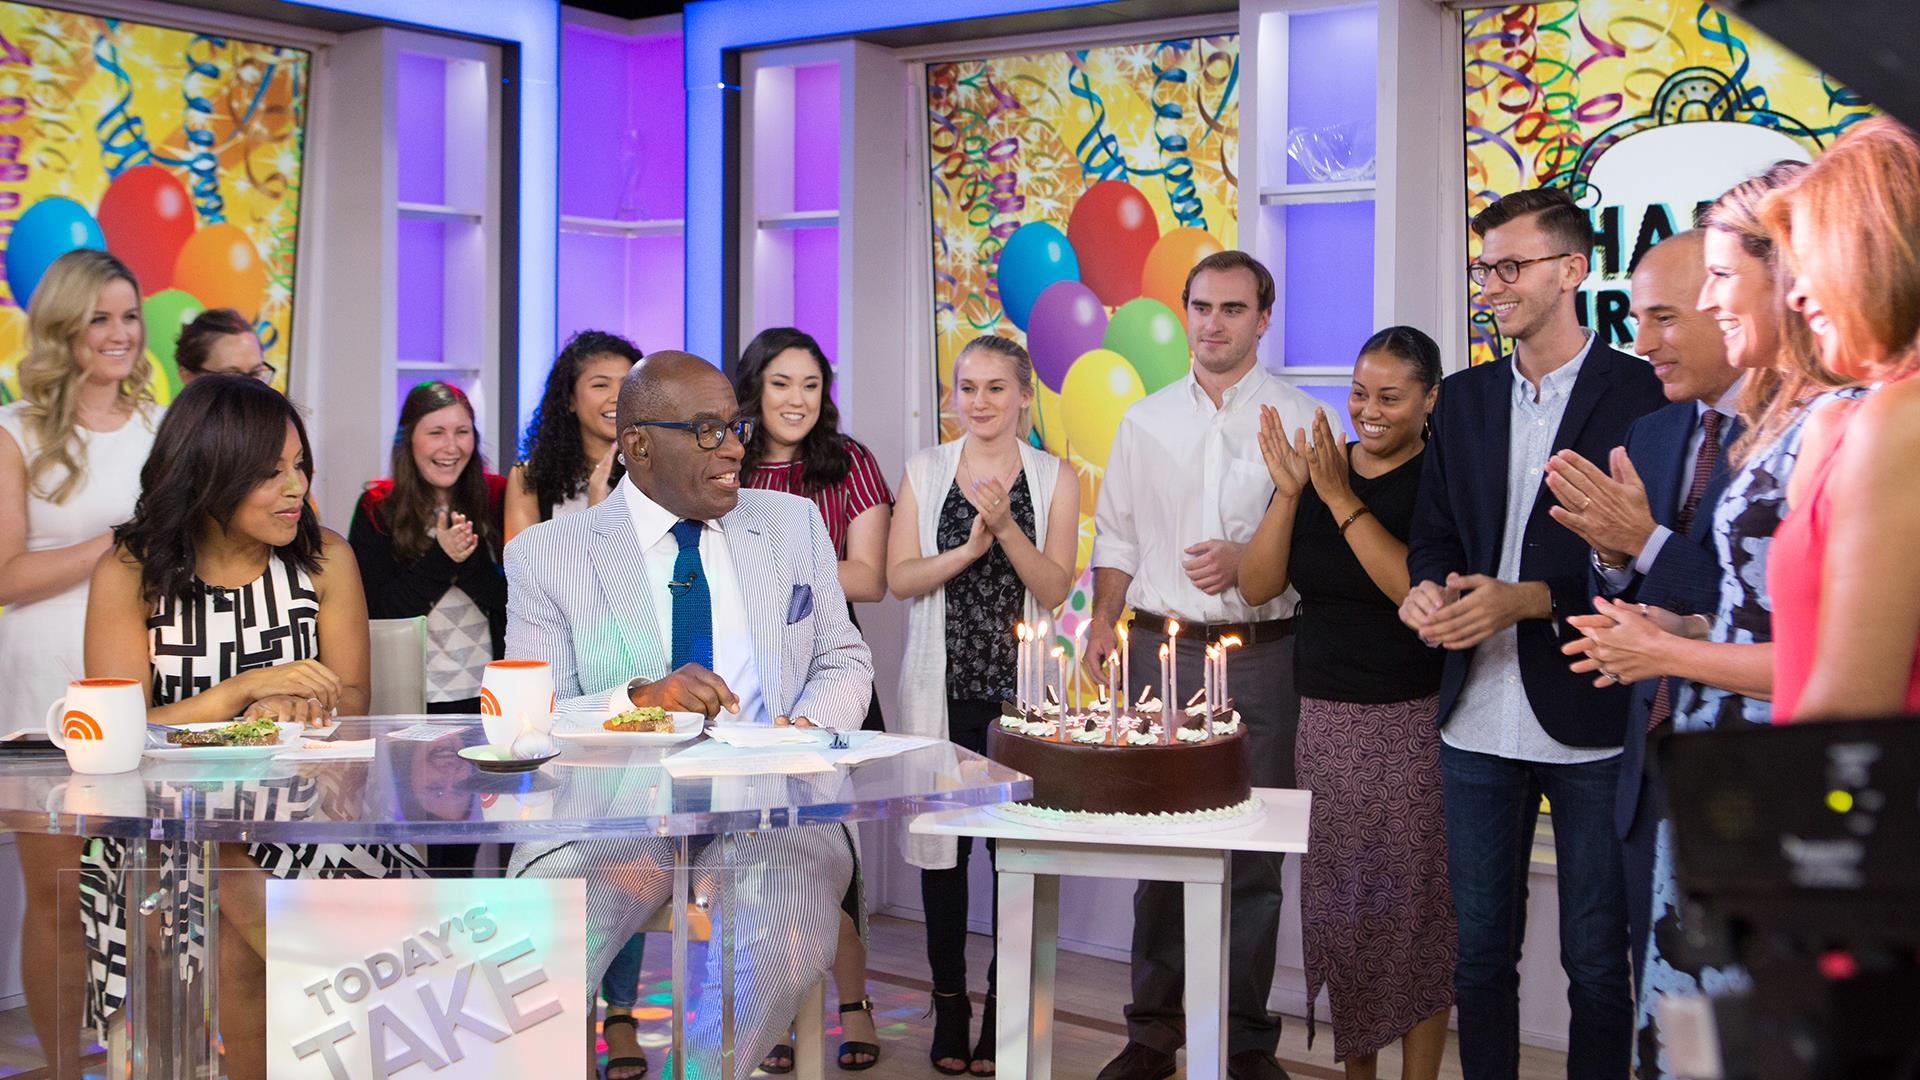 See Al Roker Get A Birthday Surprise From Today Anchors And Mr T